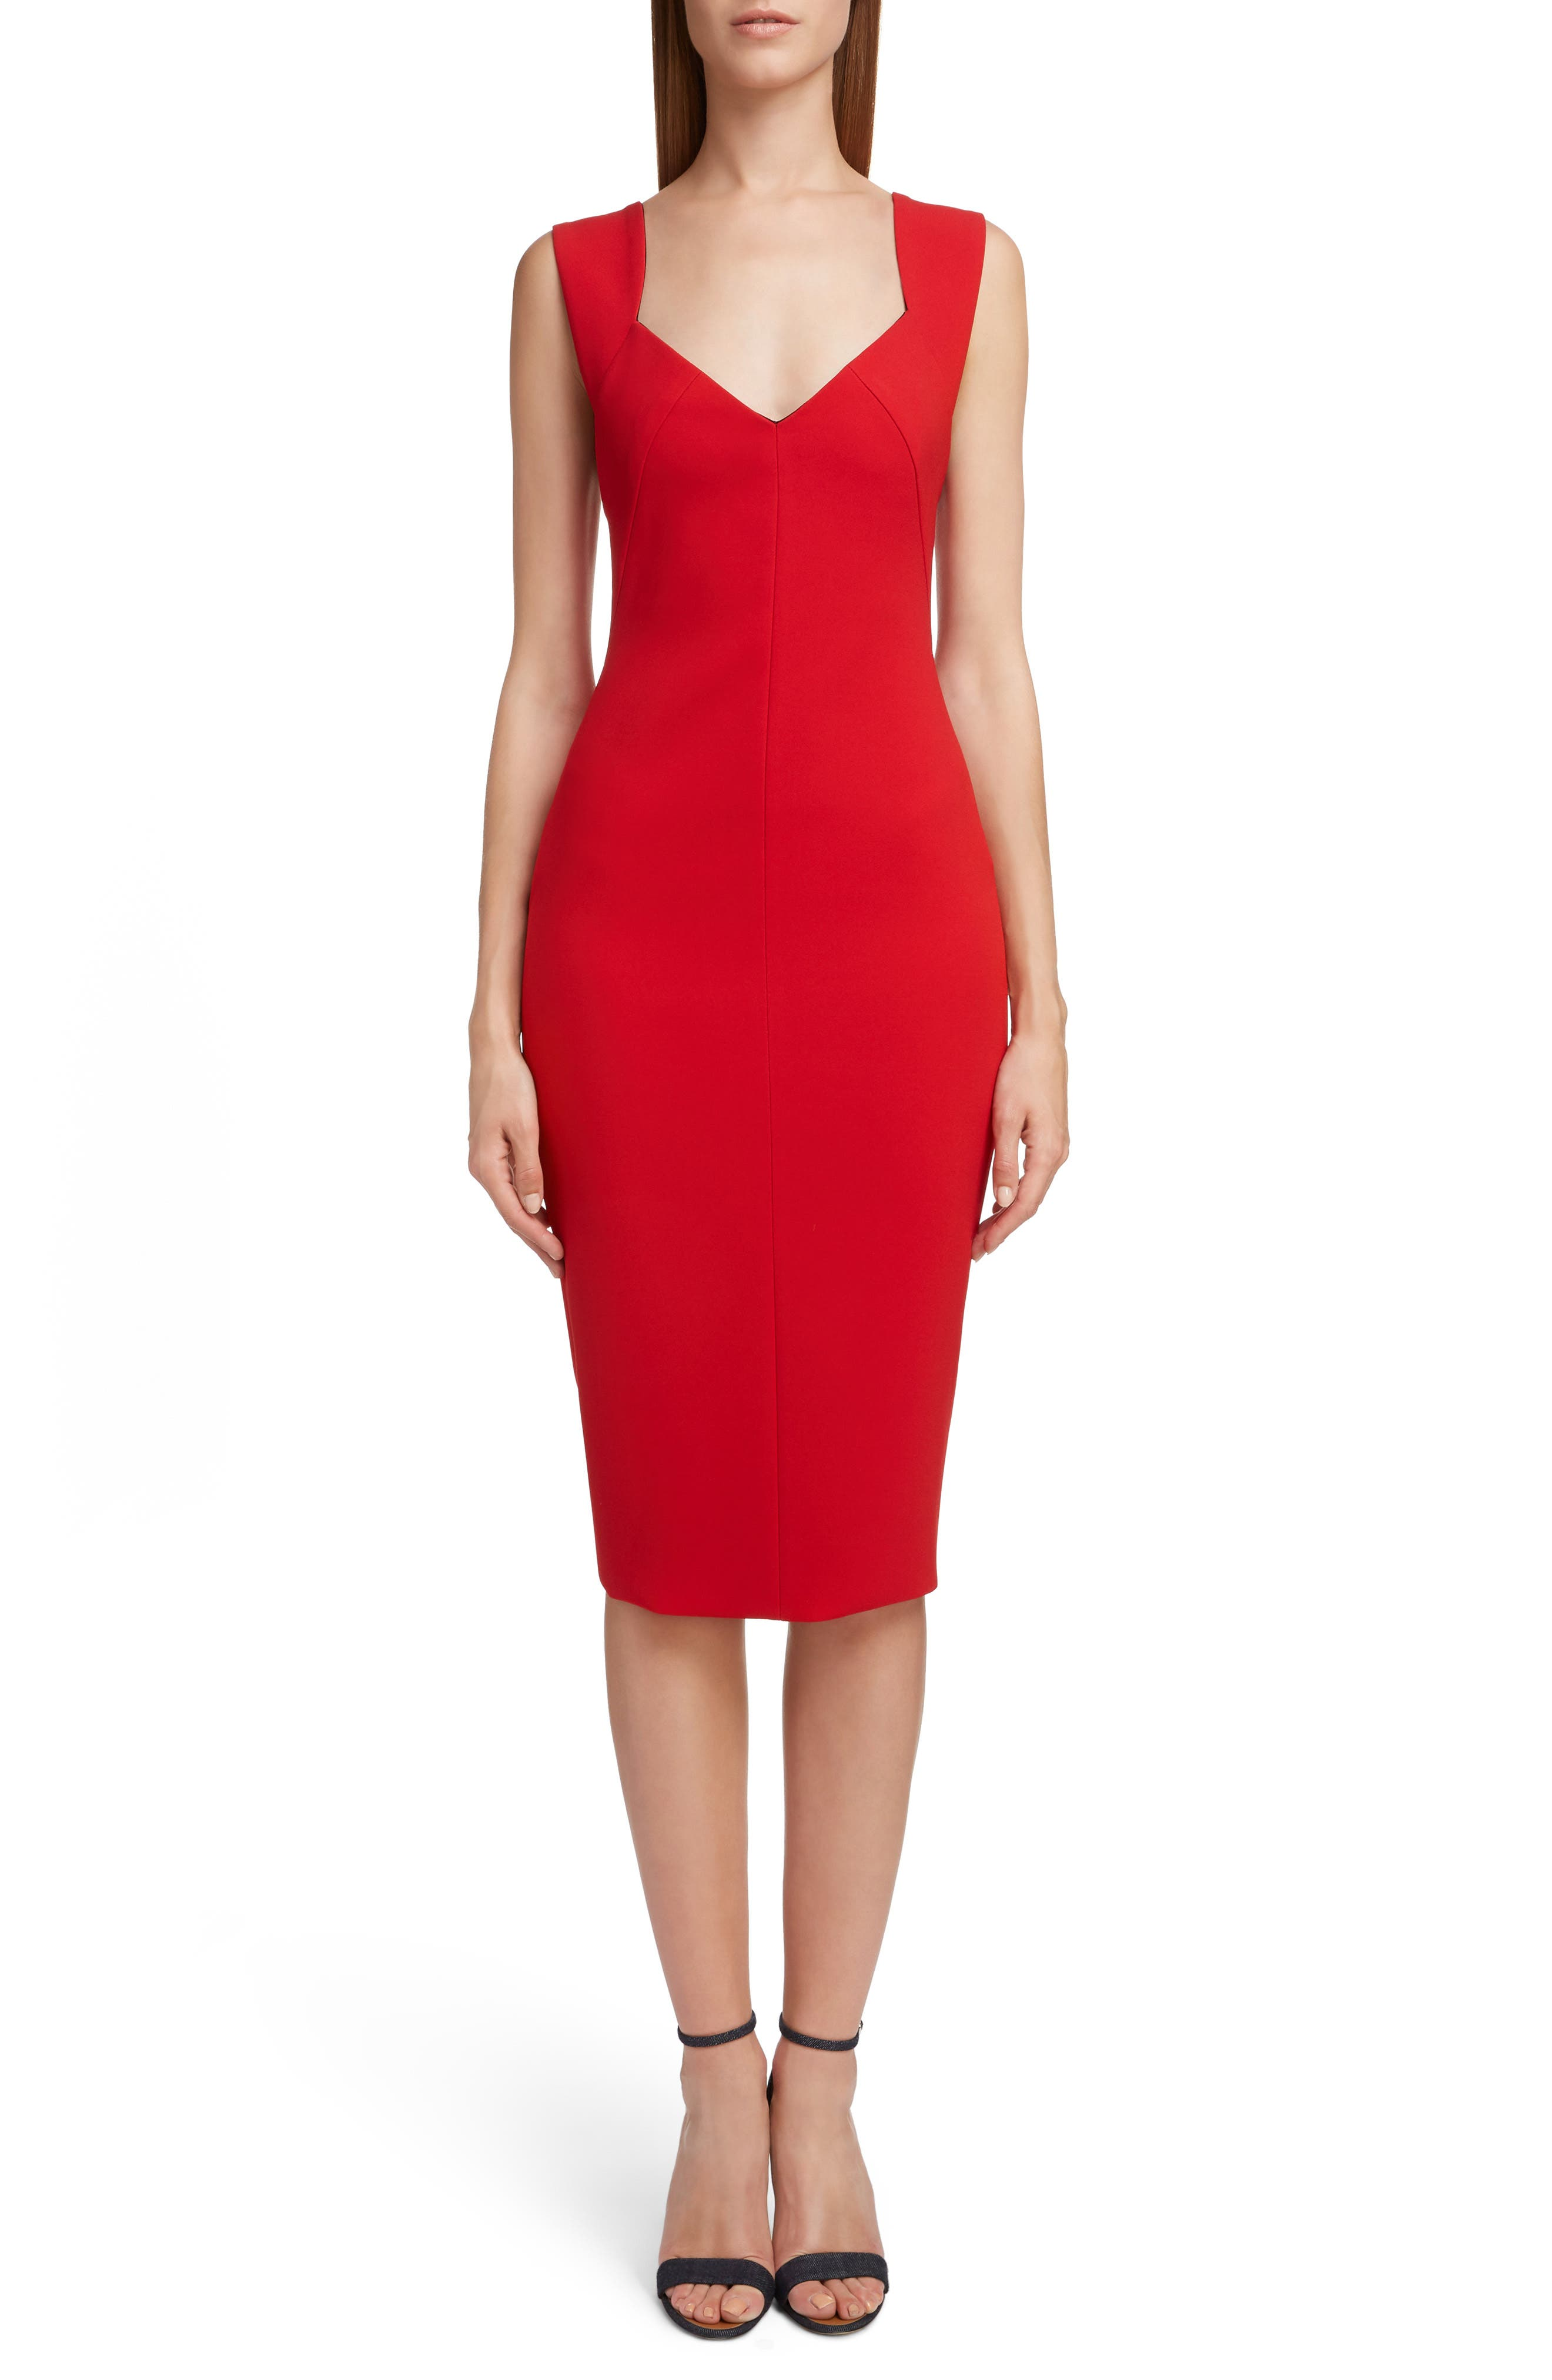 Victoria Beckham Sweetheart Neck Body-Con Dress, US / 8 UK - Red